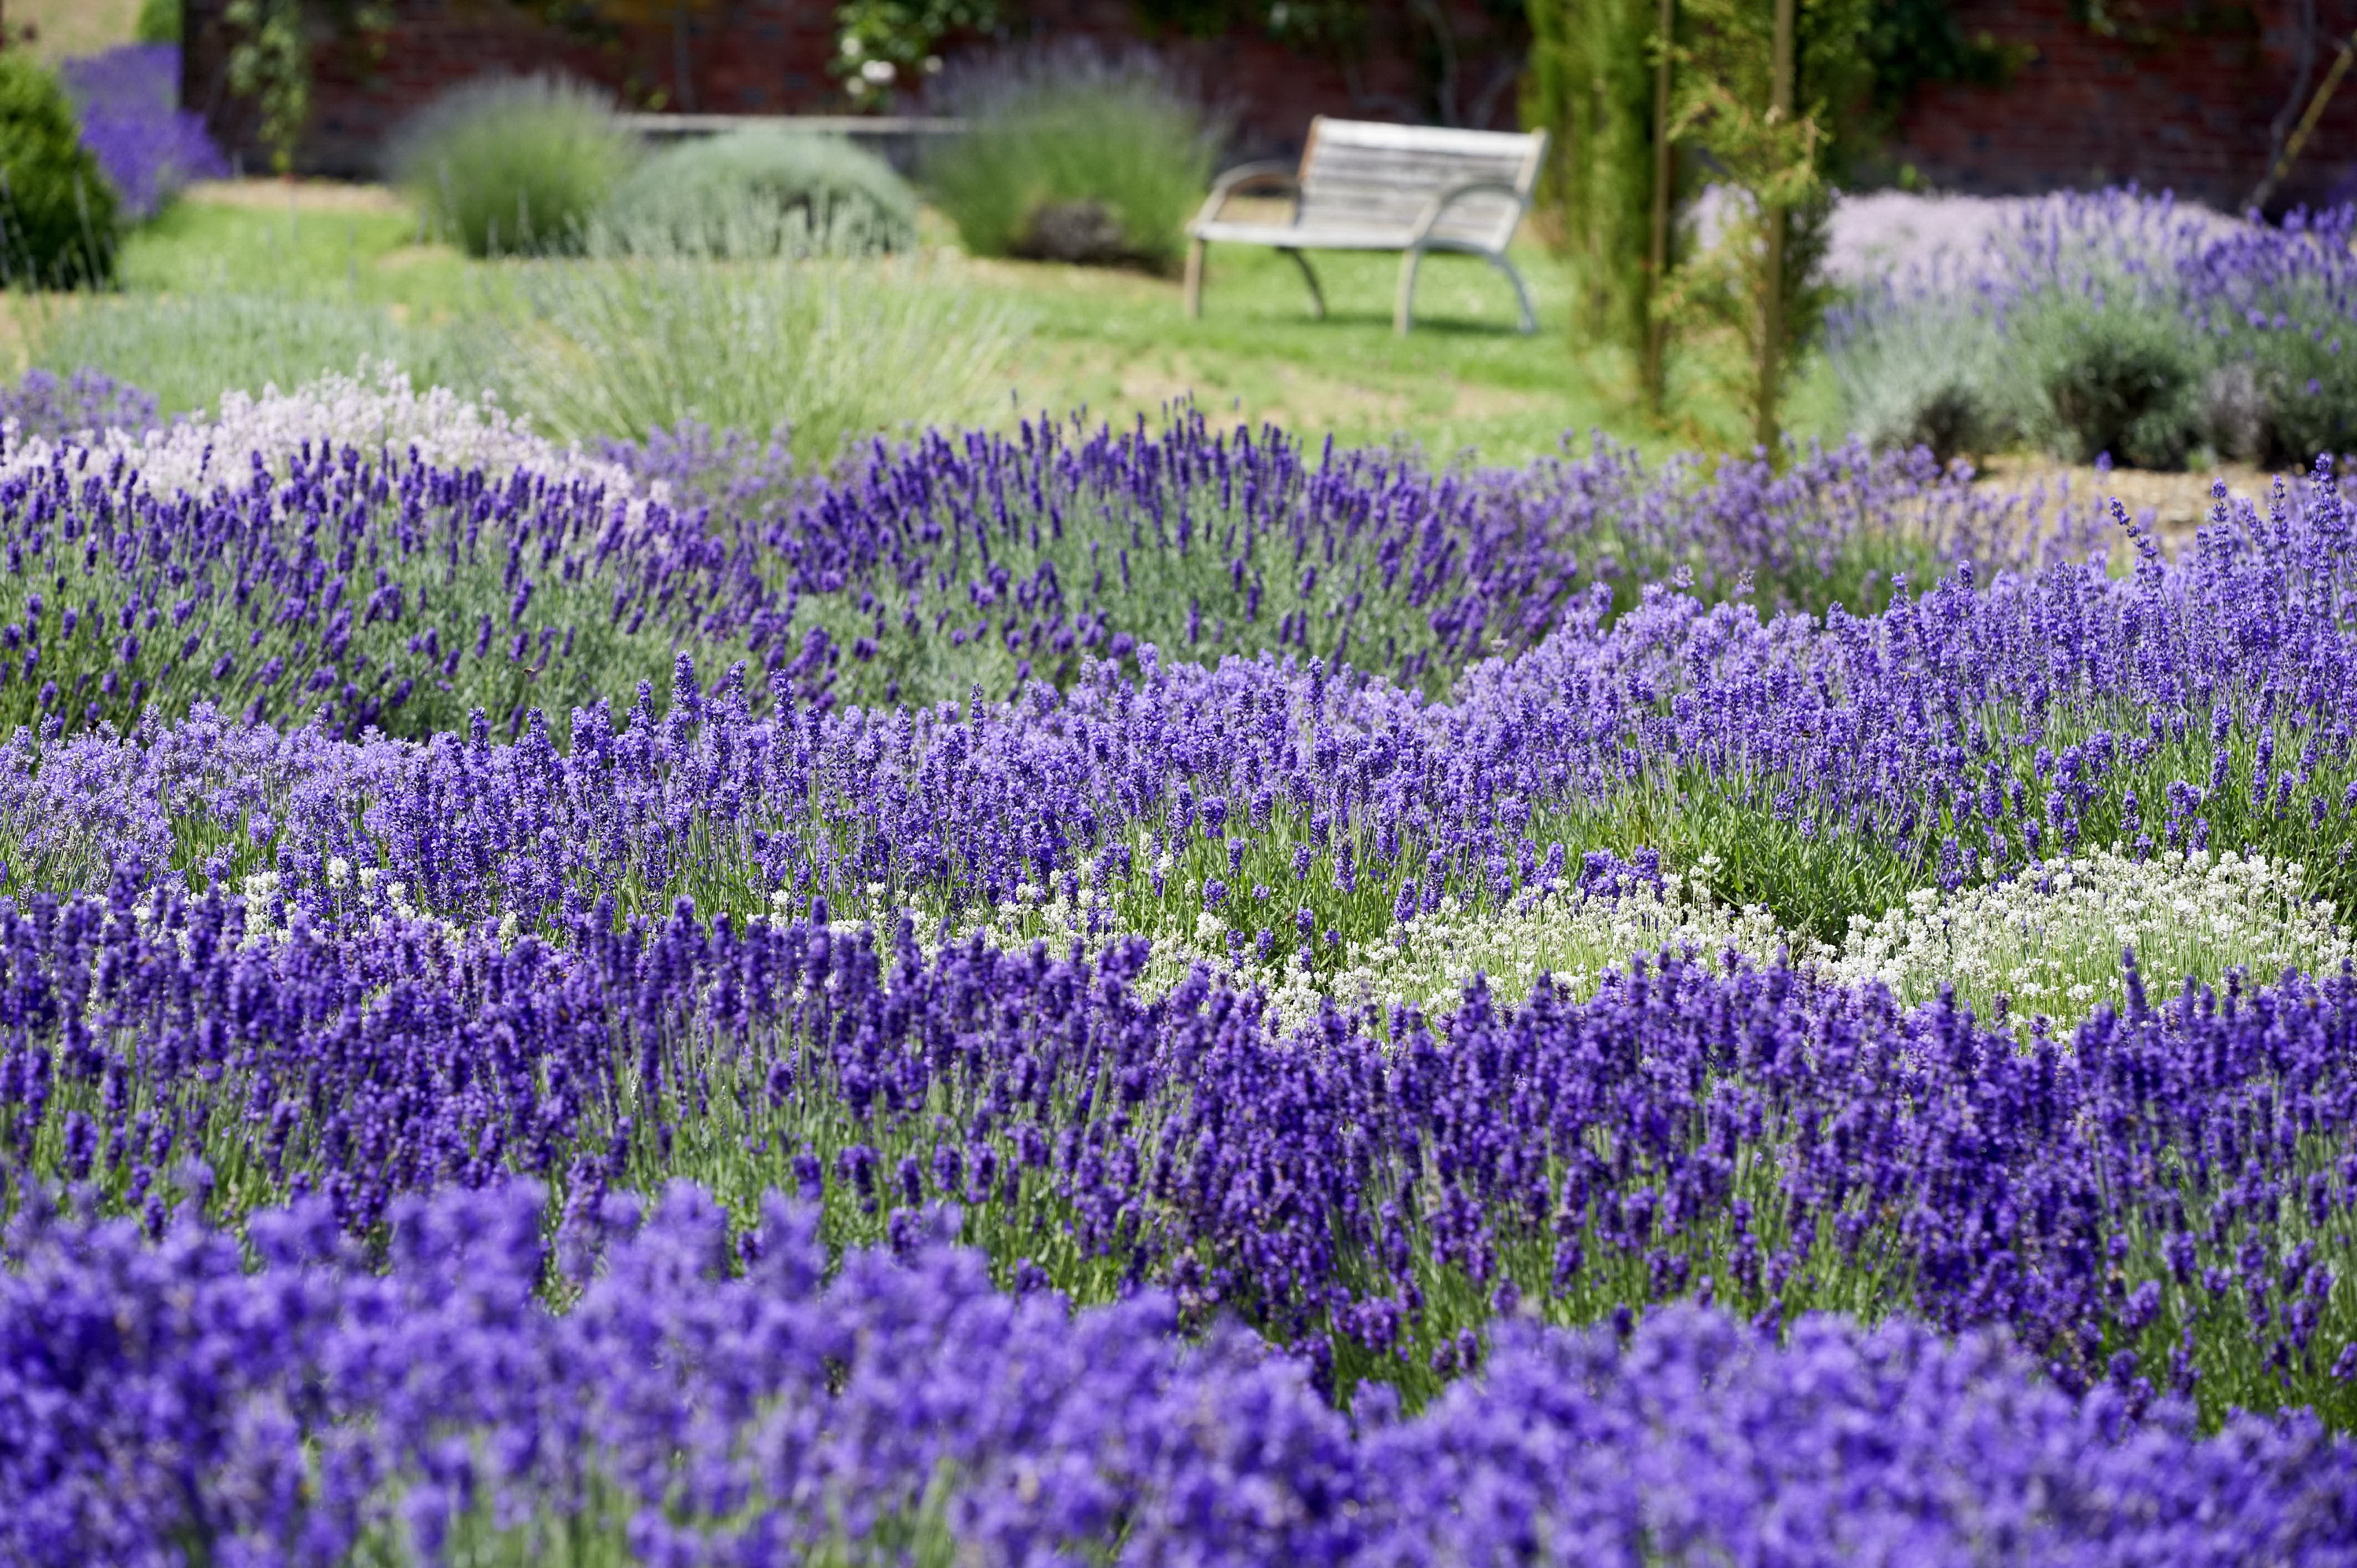 Lavendel in der Gartengestaltung Photo: Helix